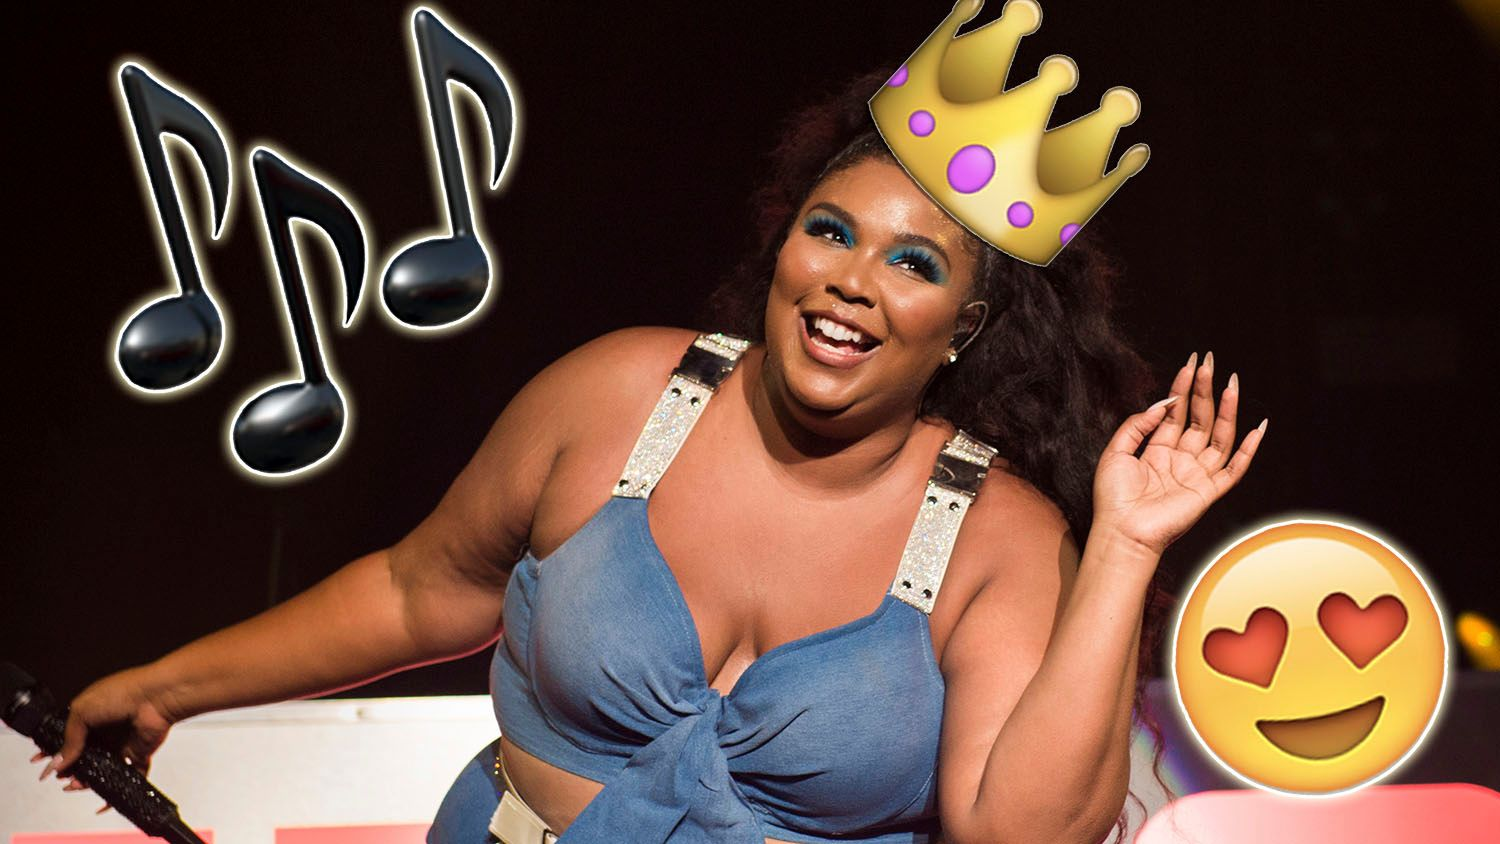 Lizzo: A celebration of an absolutely iconic career so far 👑